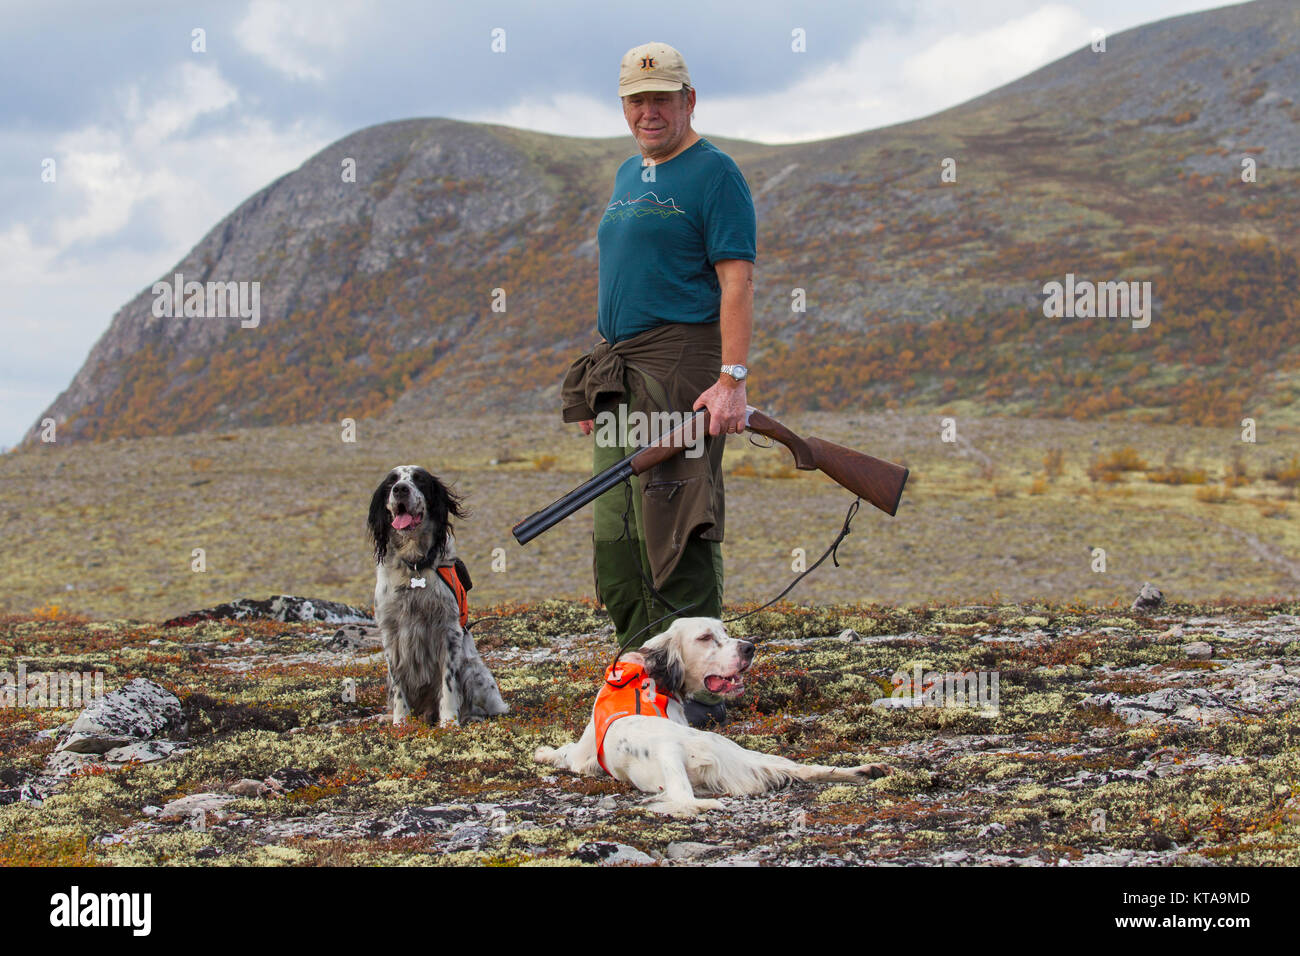 Norwegian hunter with shotgun and two English Setters hunting grouse on the tundra in autumn, Norway - Stock Image